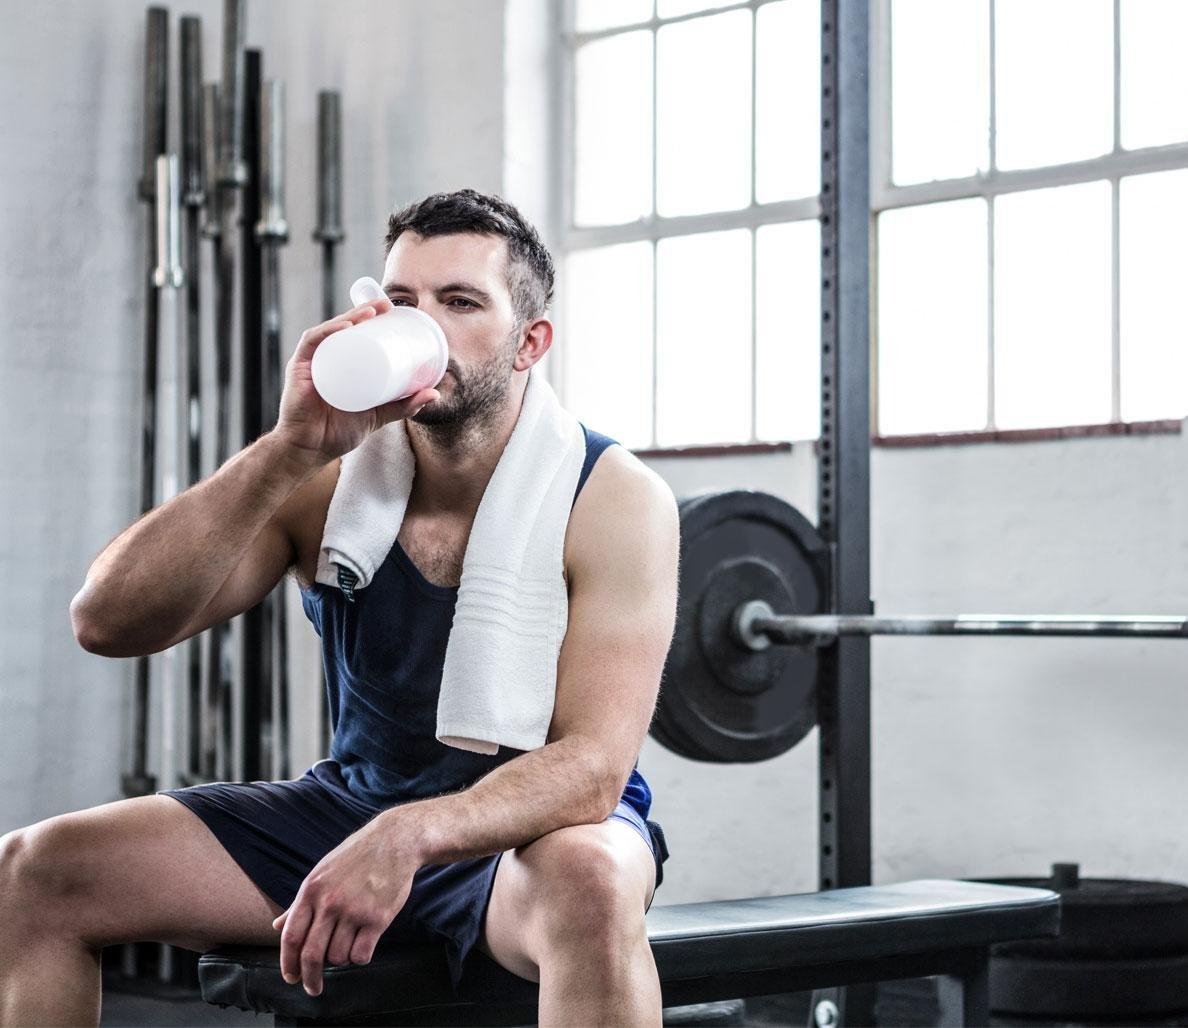 The 10 Best Ready-to-drink Protein Beverages You Can Buy